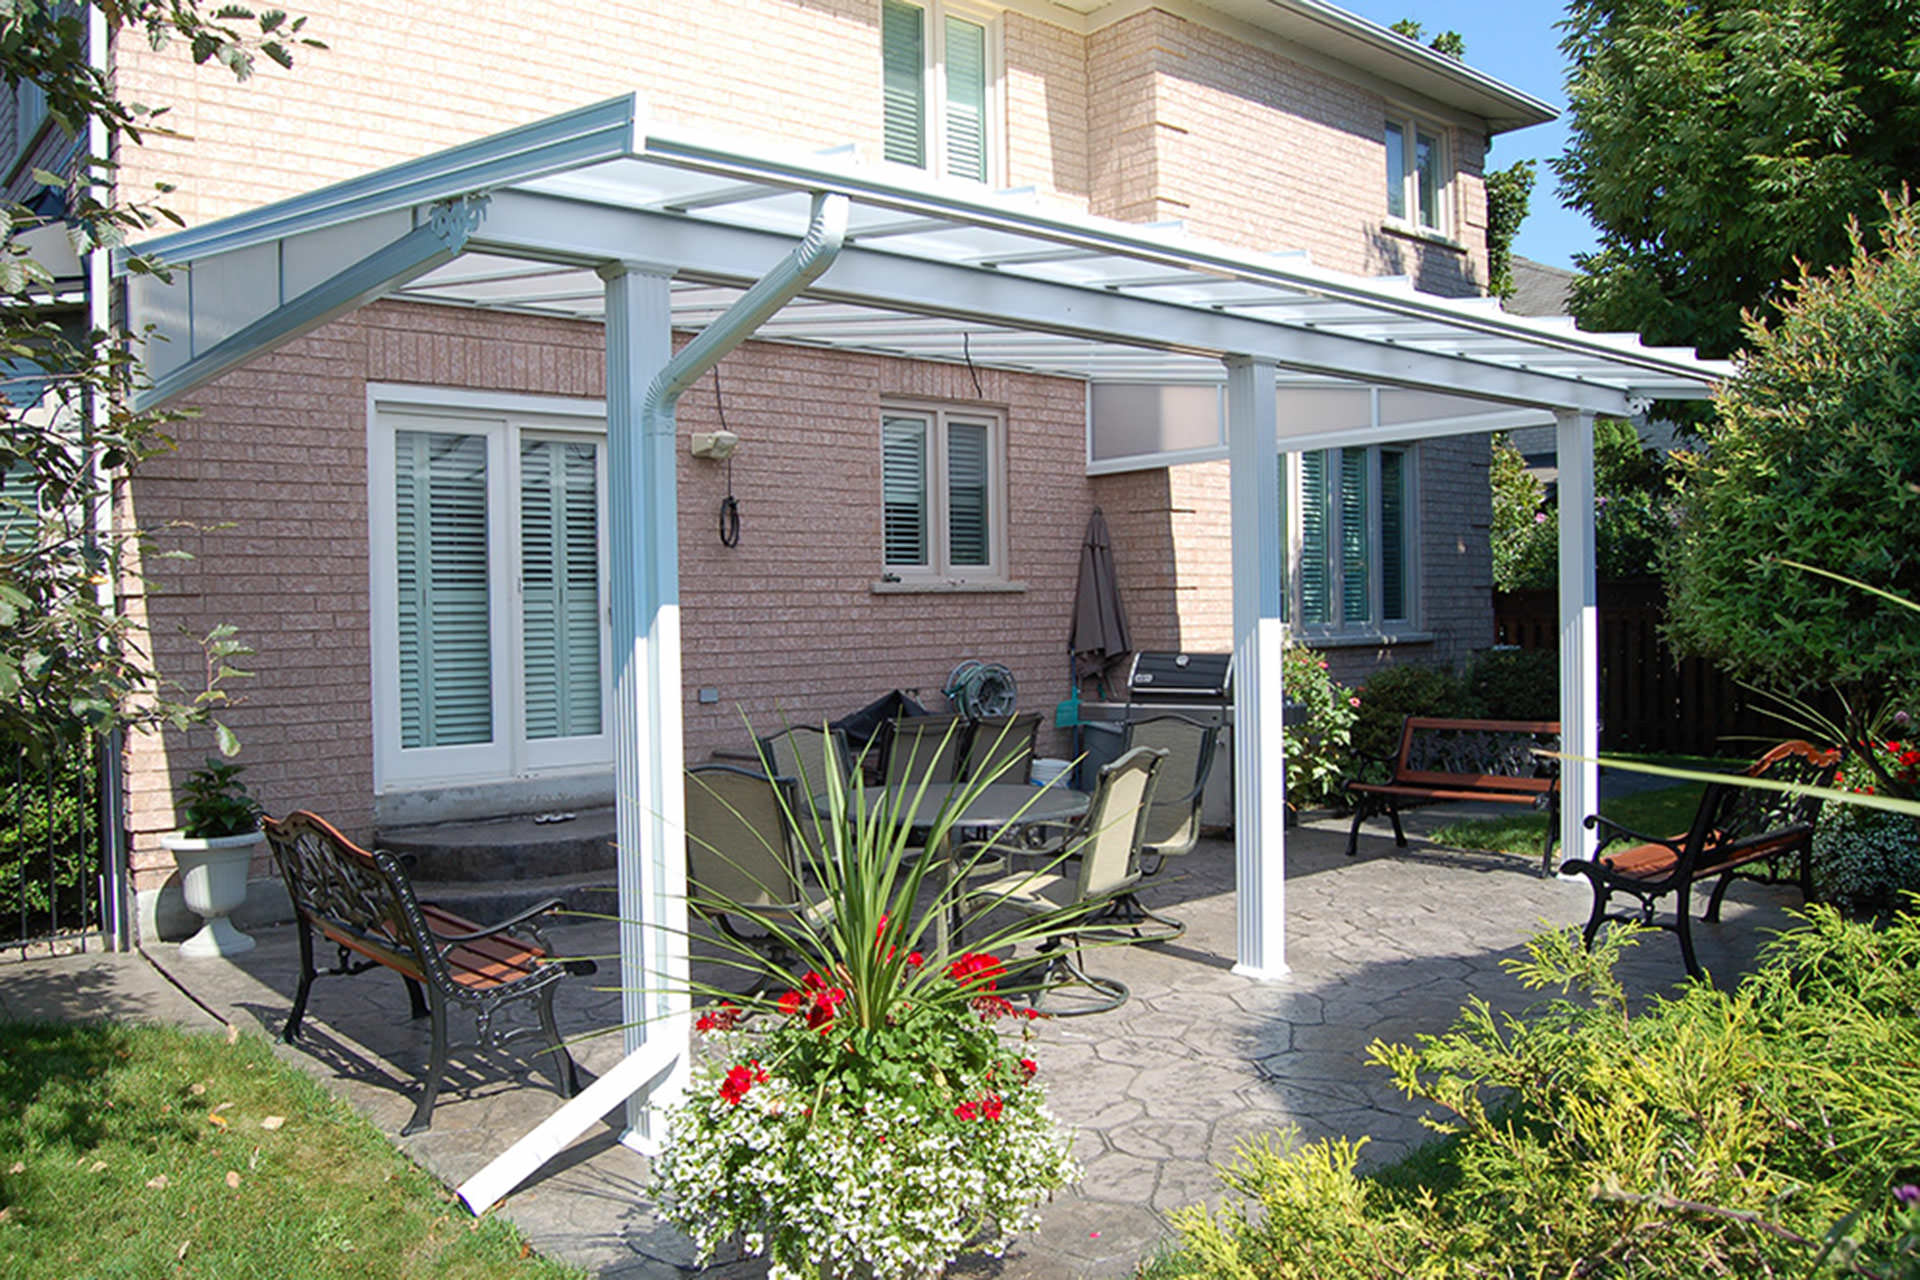 Pergolas or Patio Covers How to Choose The Right Shade Solution